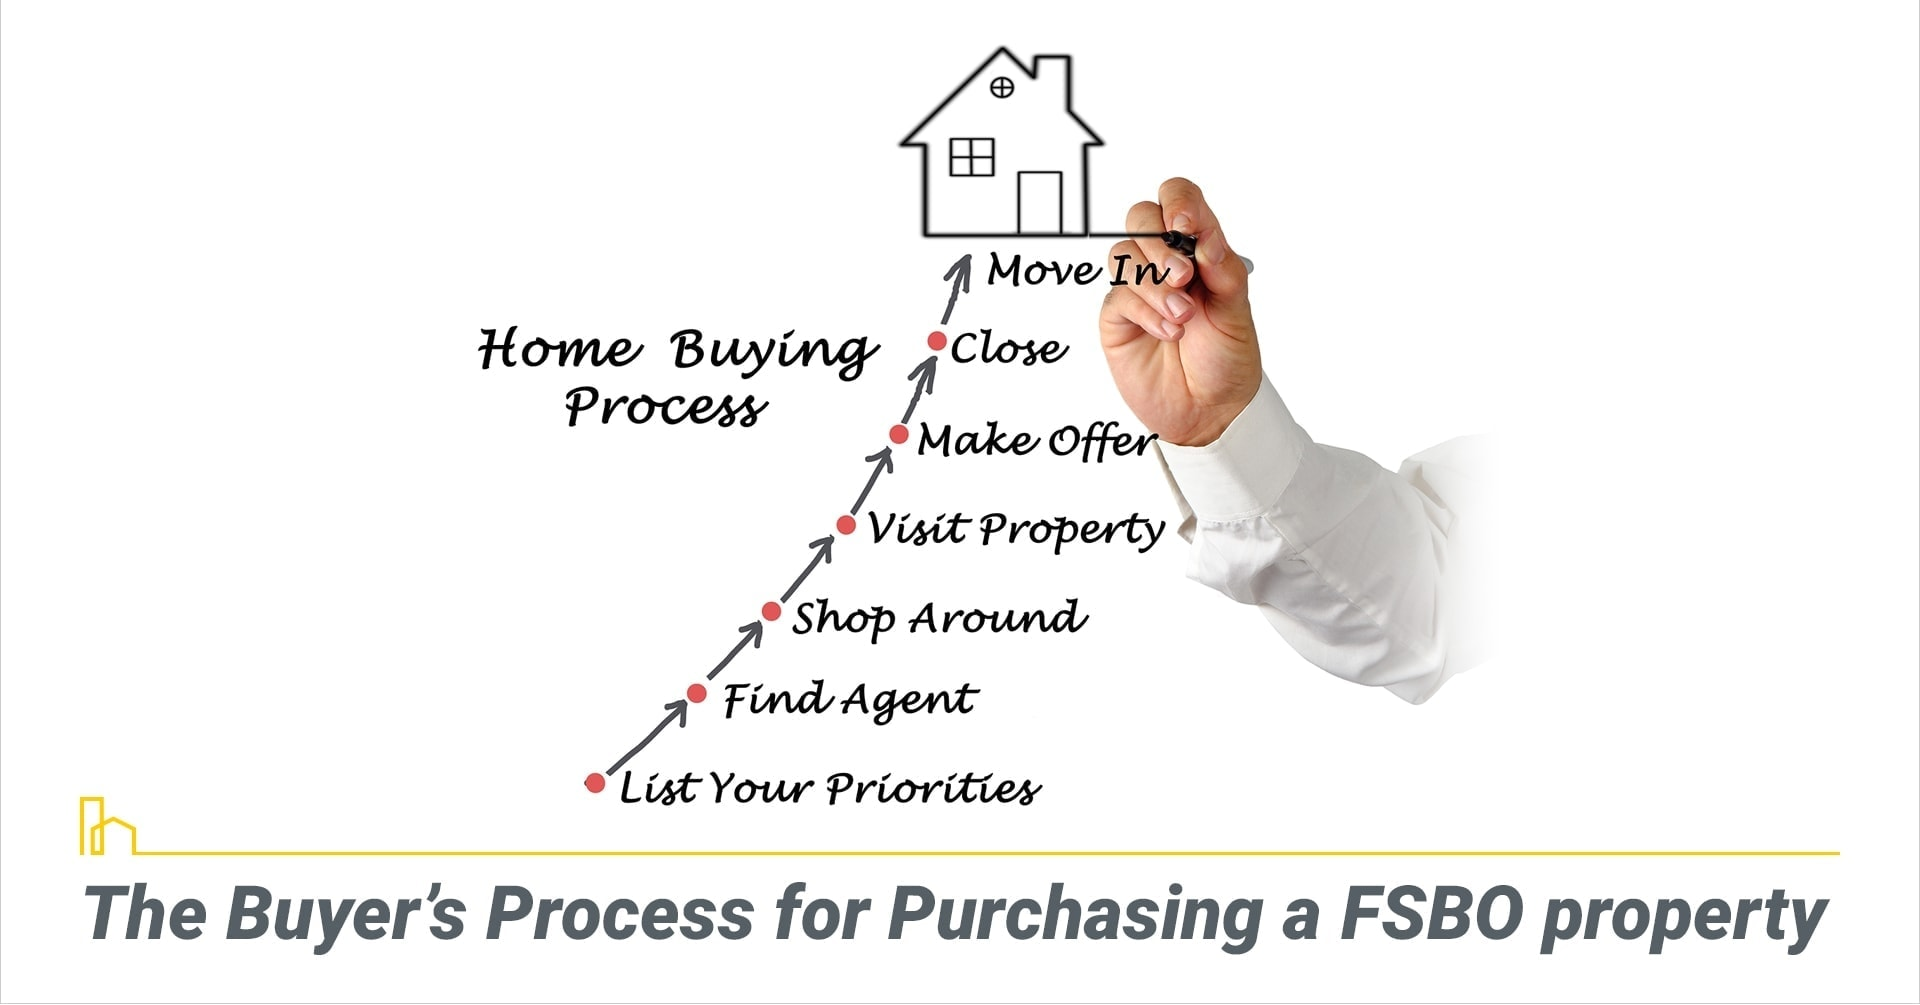 The Buyer's Process for Purchasing a FSBO property, steps for buying a FSBO home